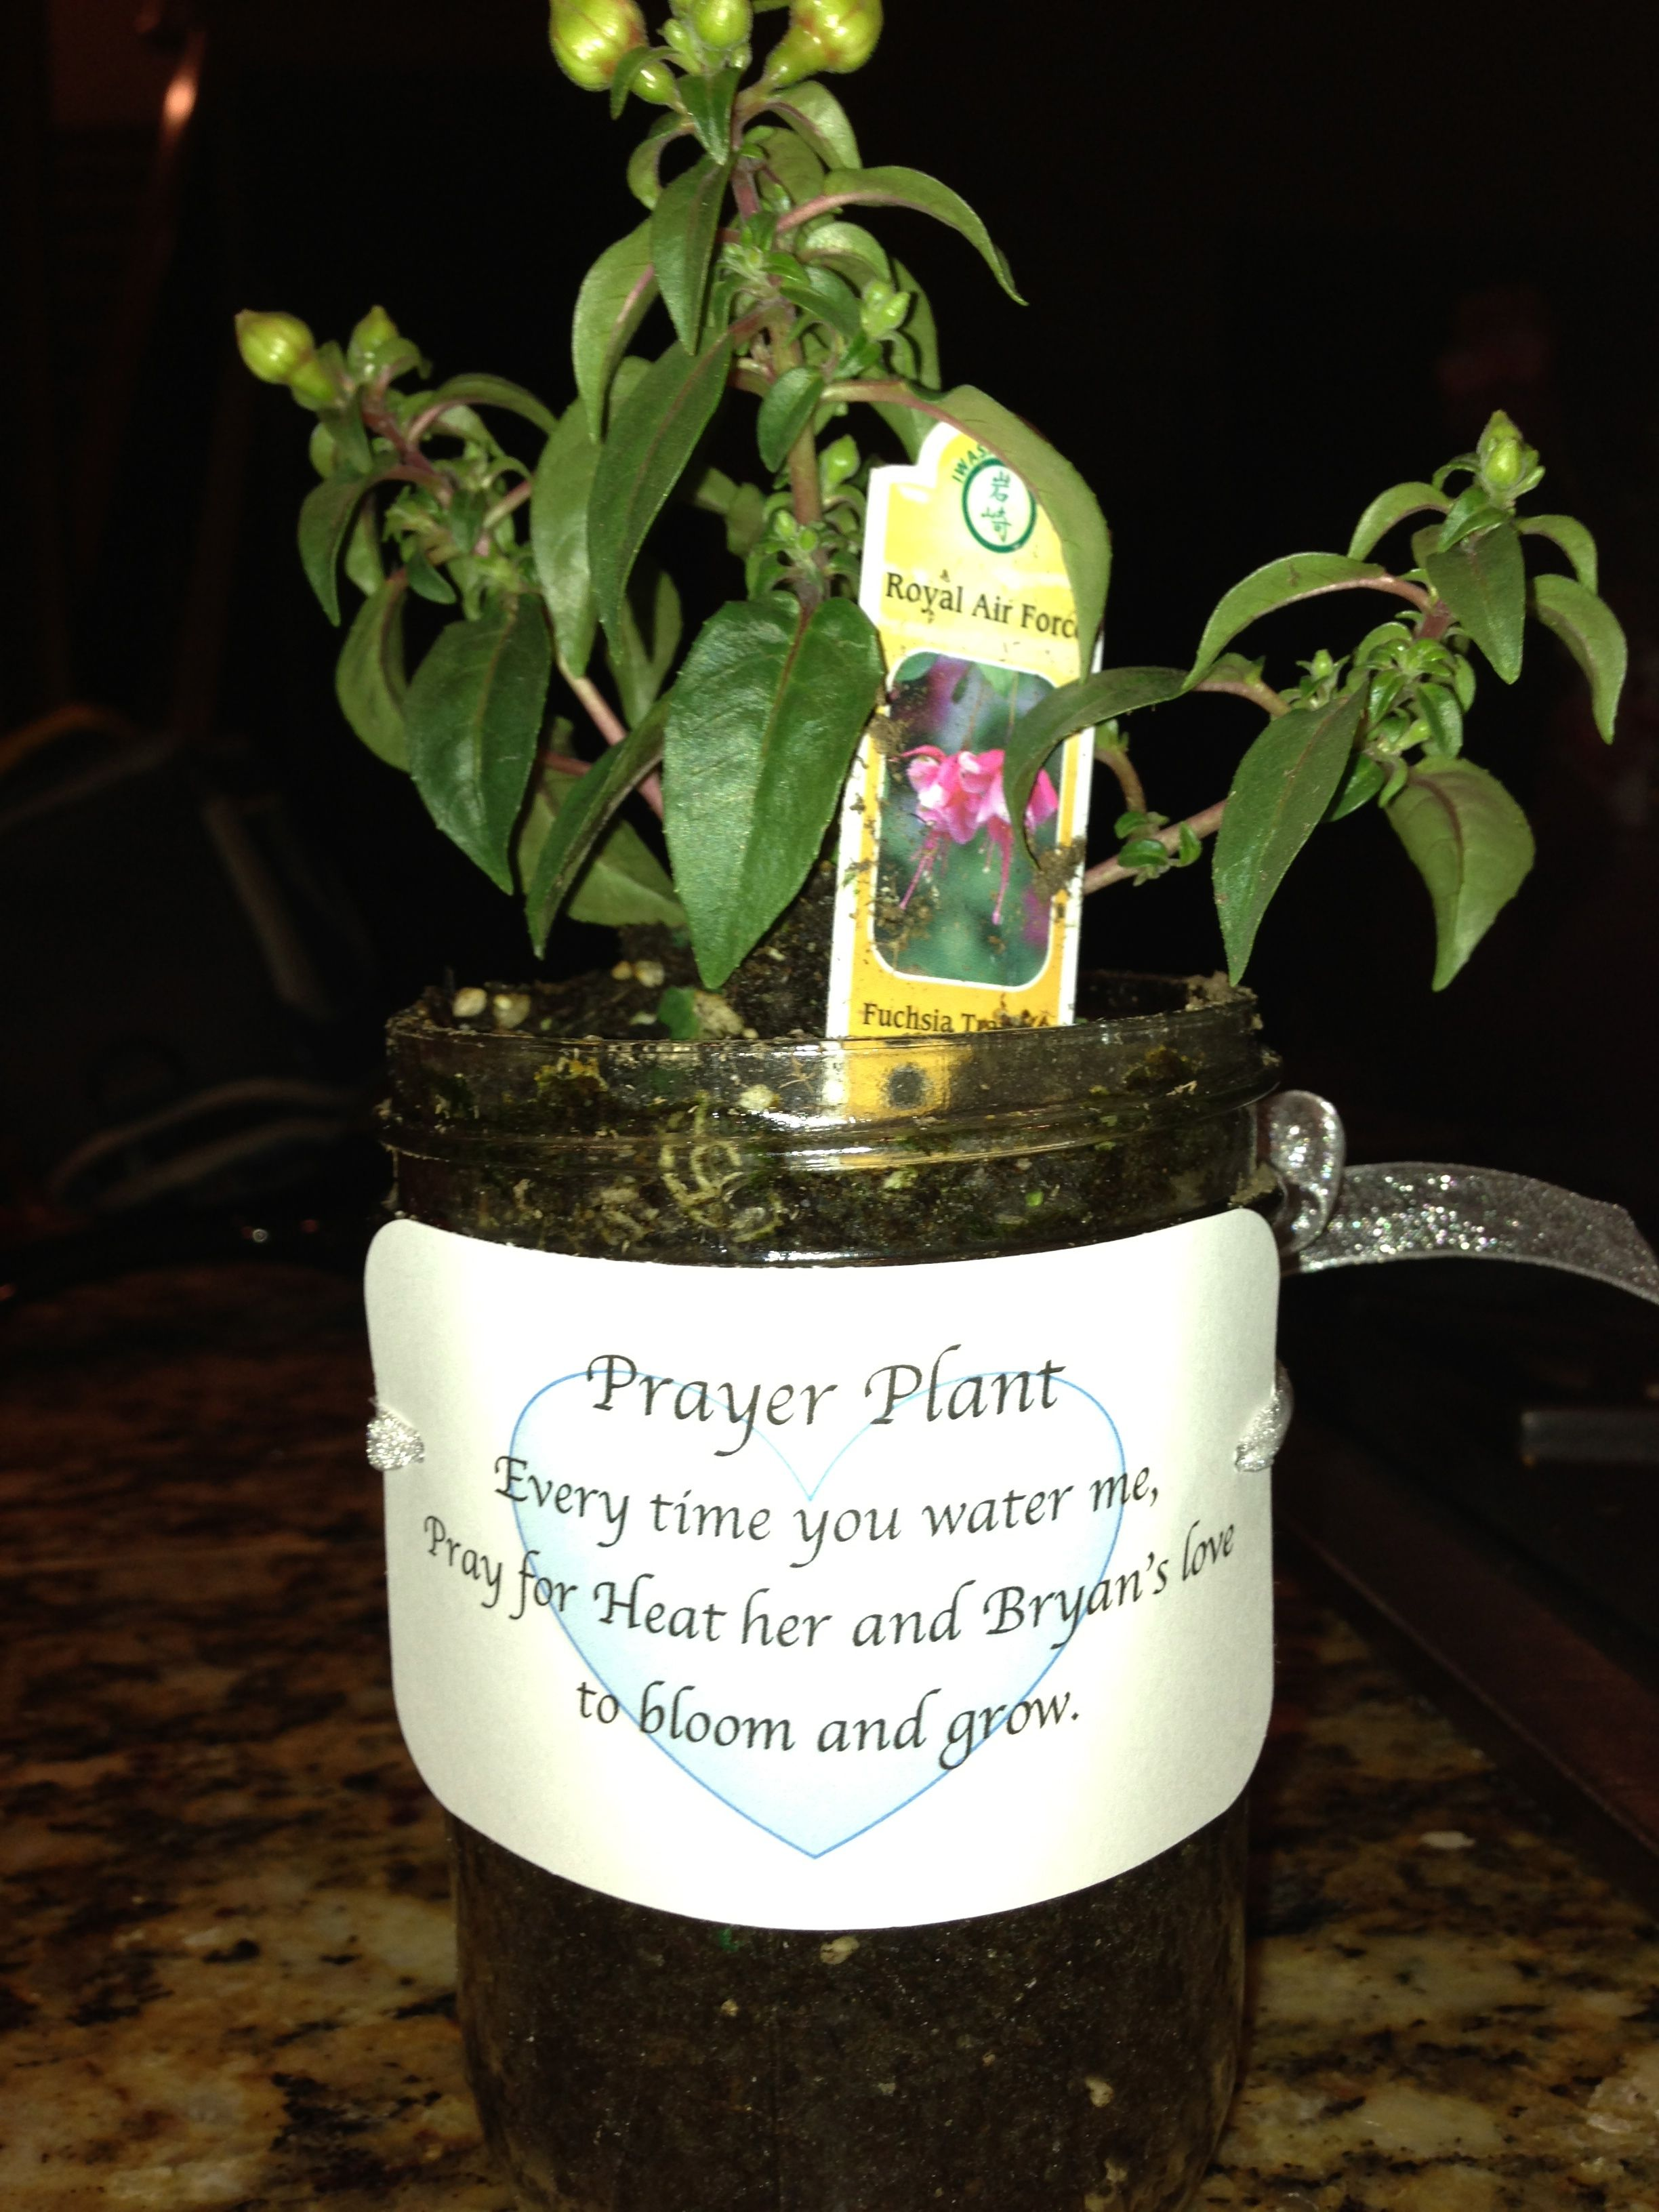 for my bridal shower prayer plant every time you water me pray